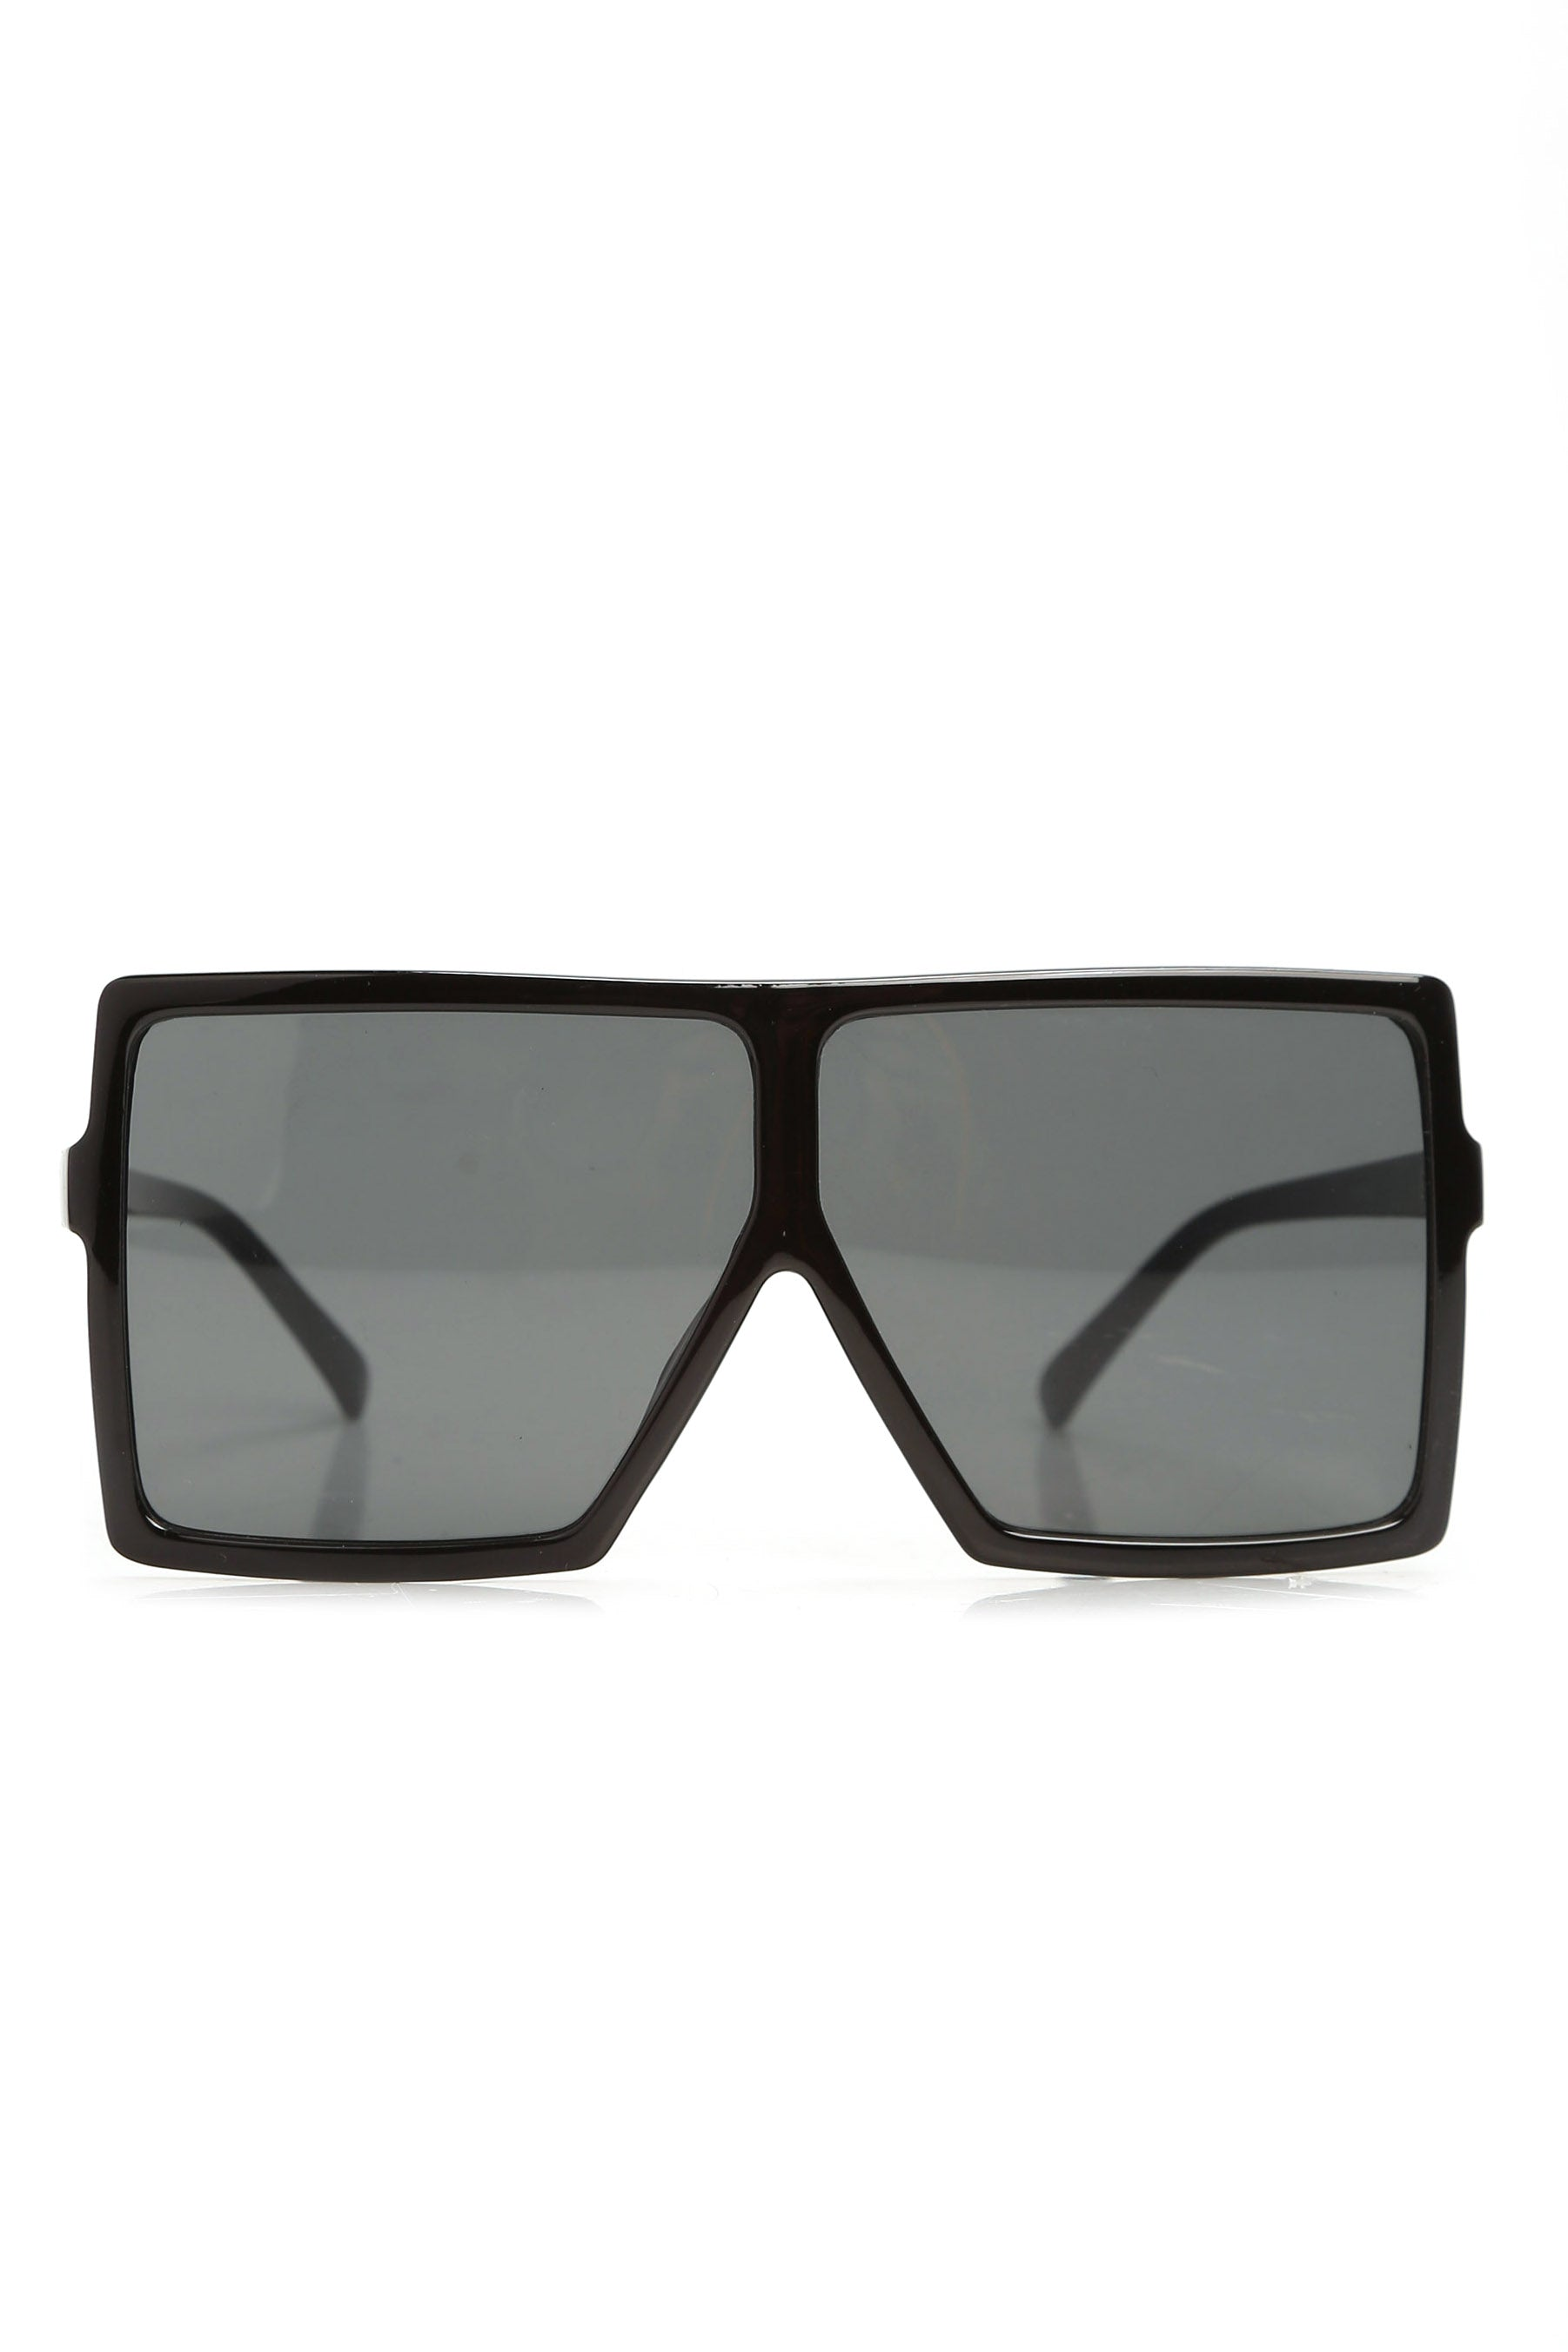 a7ba57685e8 Be There Or Be Square Sunglasses - Black